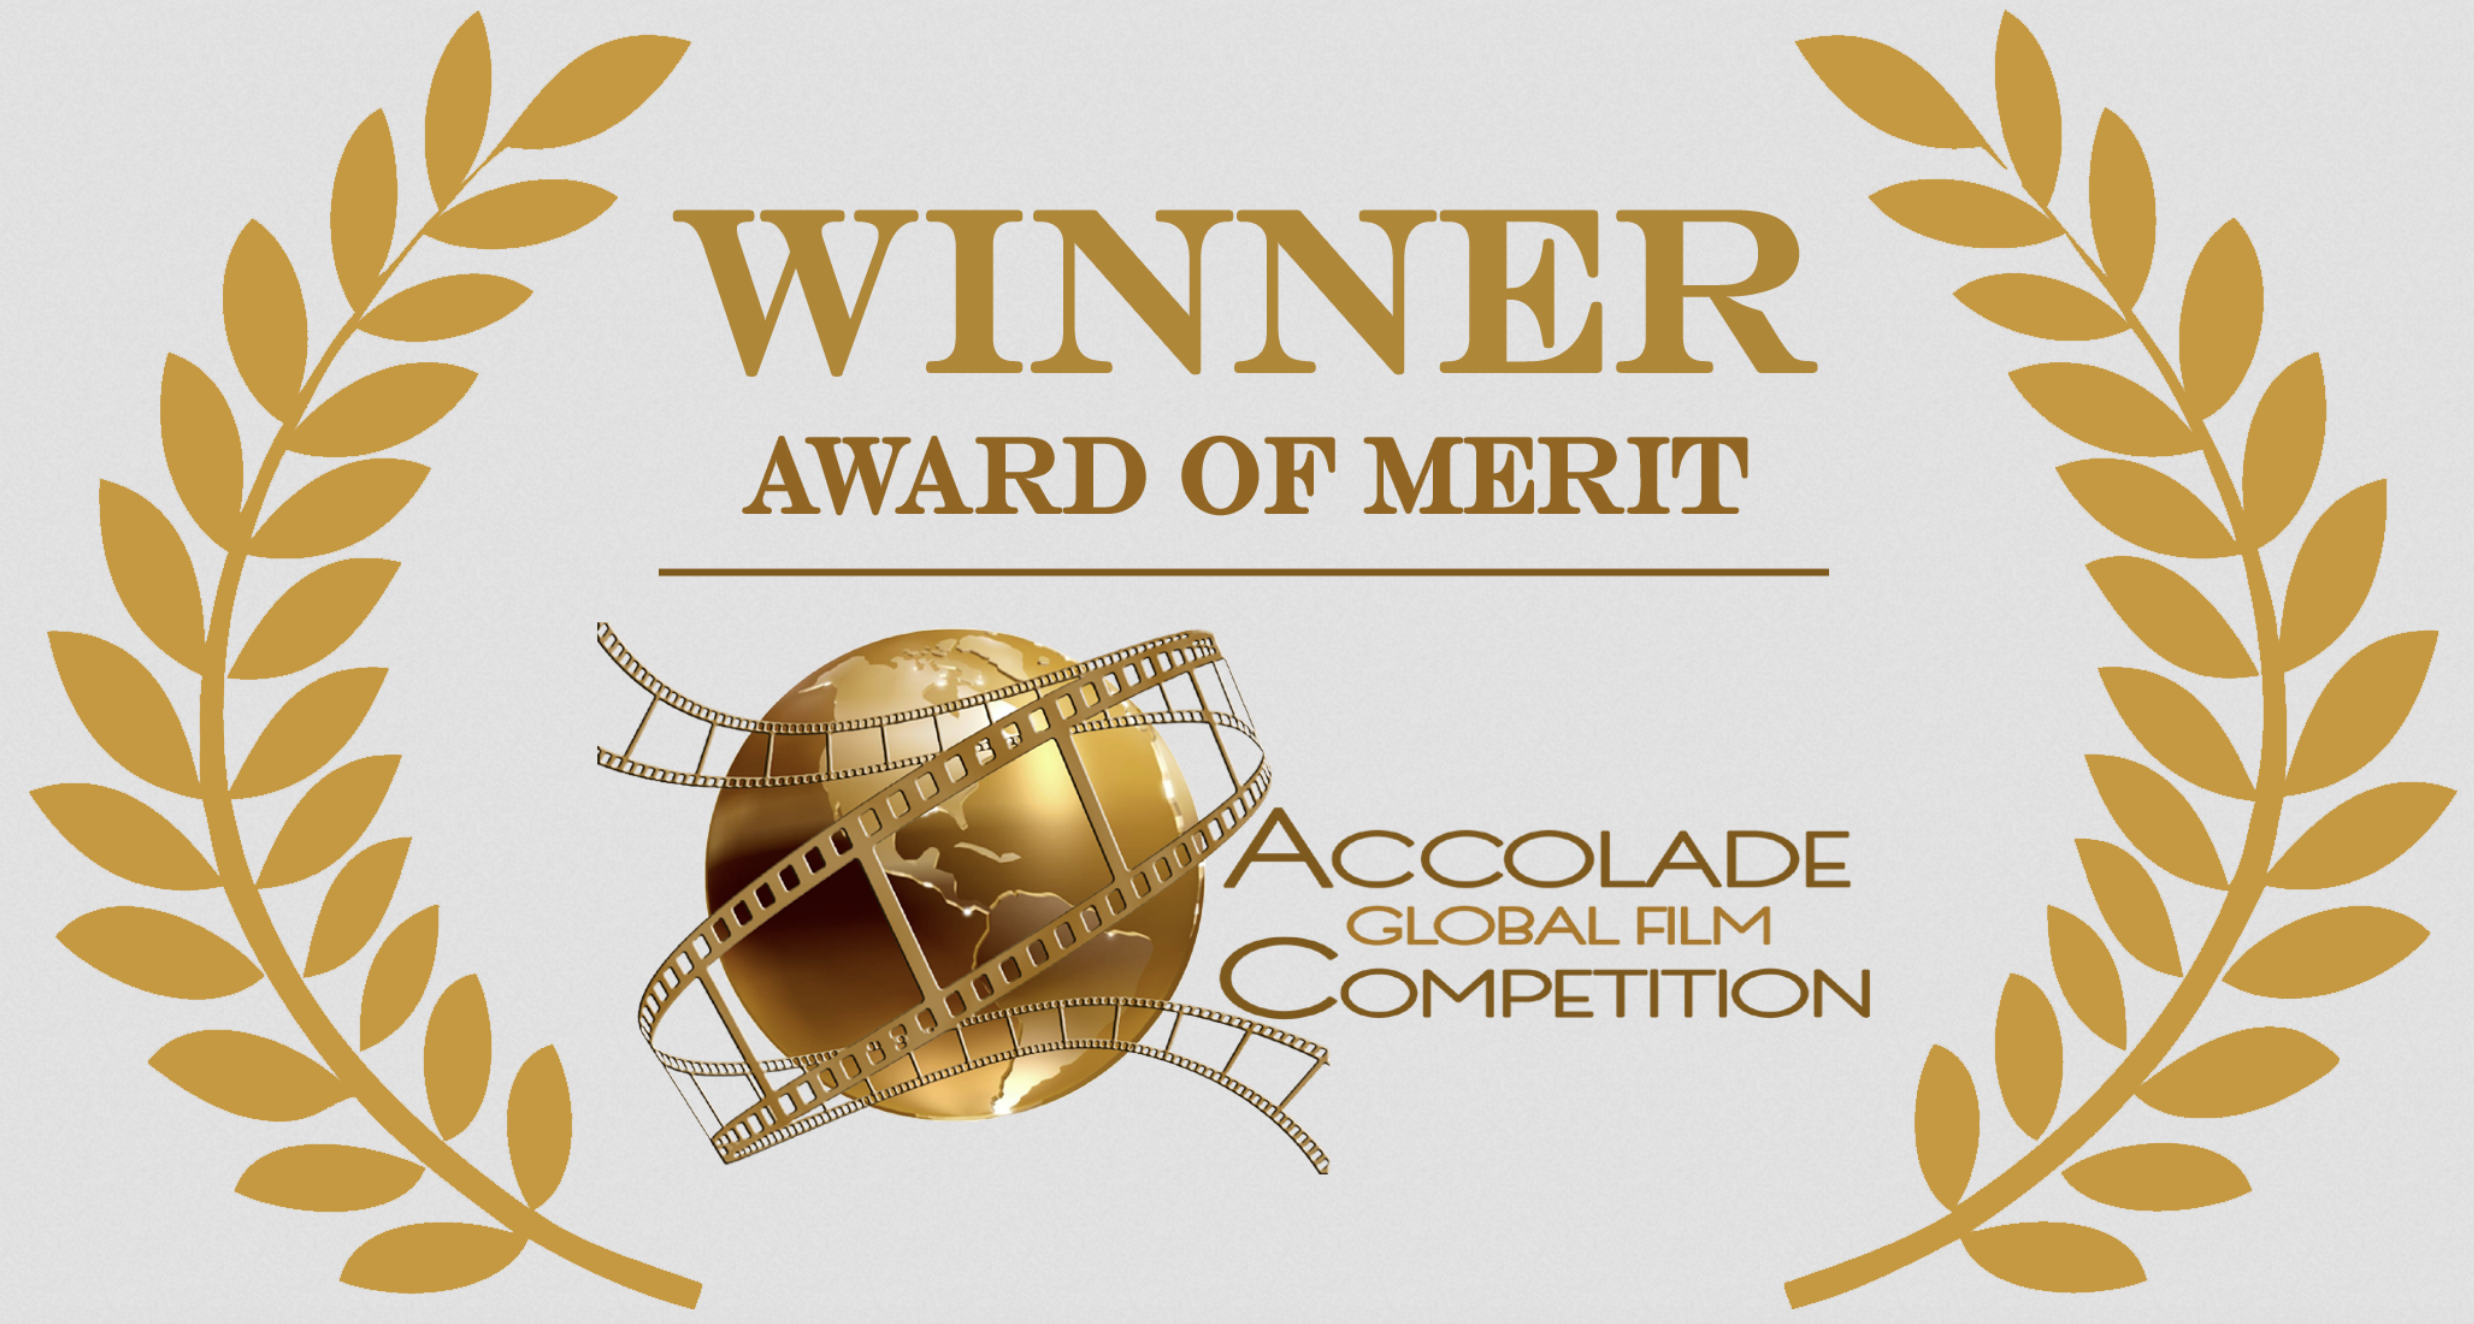 Accolade Award of Merit